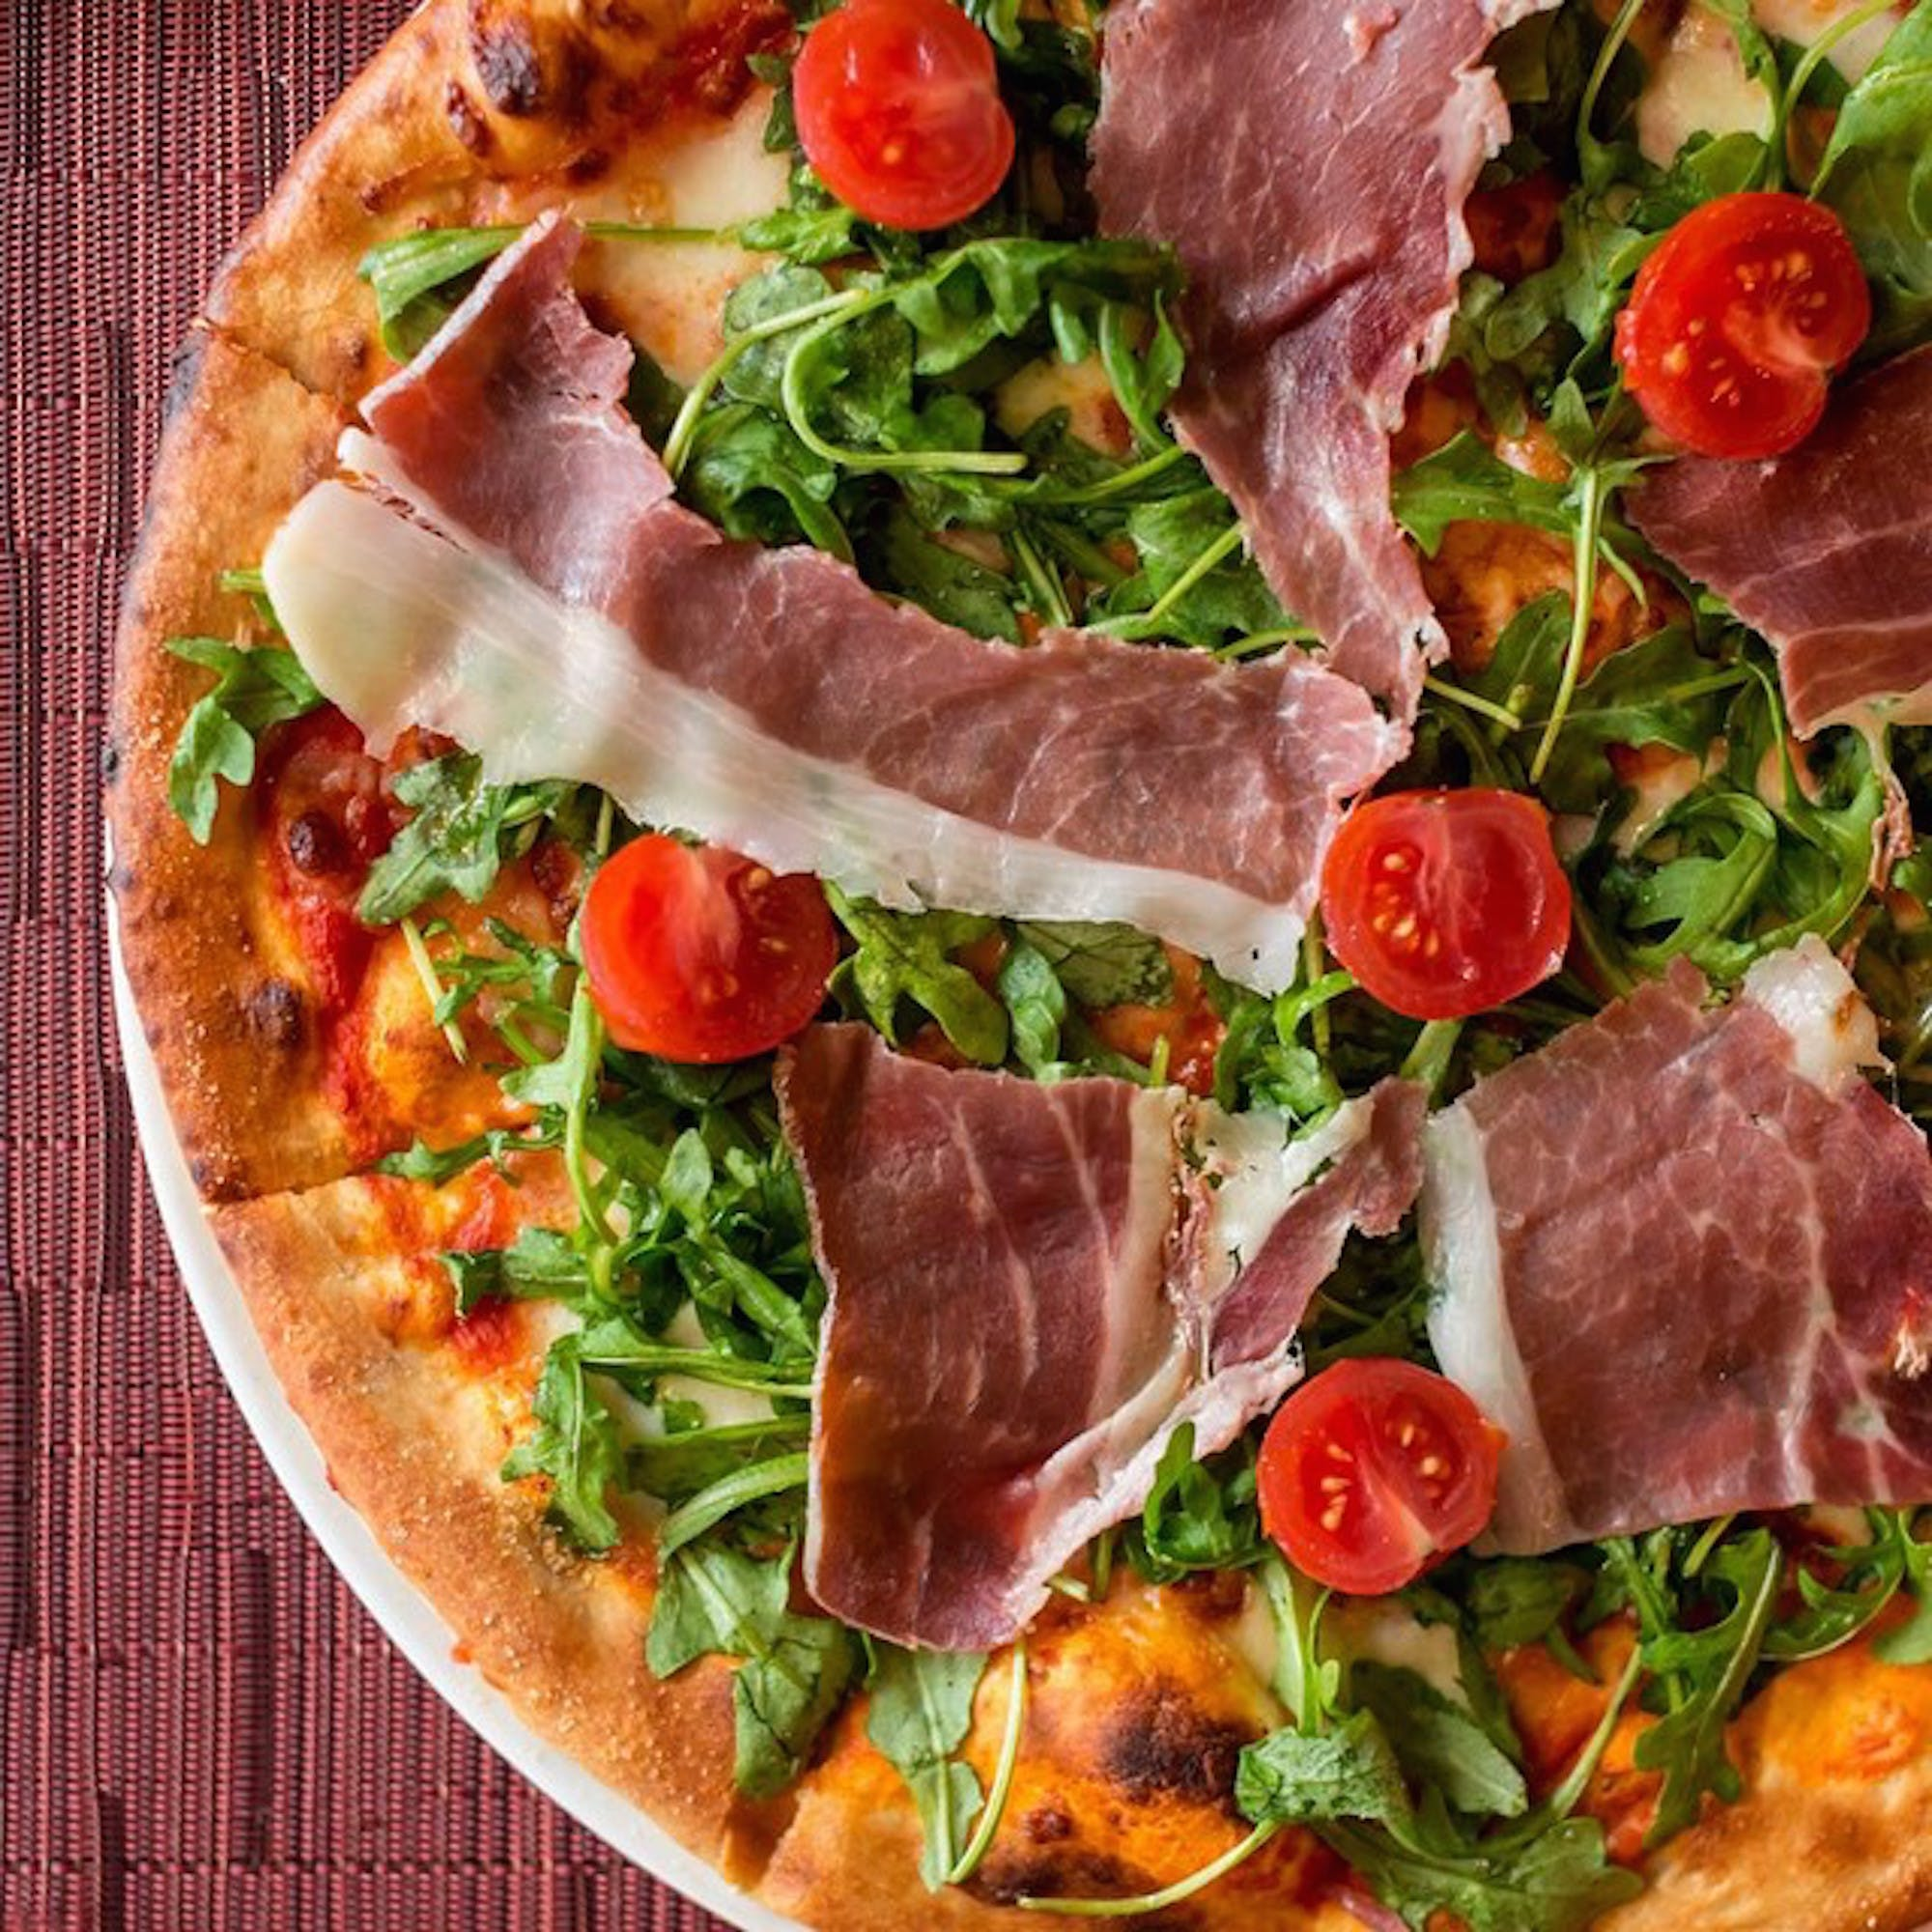 Free stock photo of food, pizza, dinner, dining